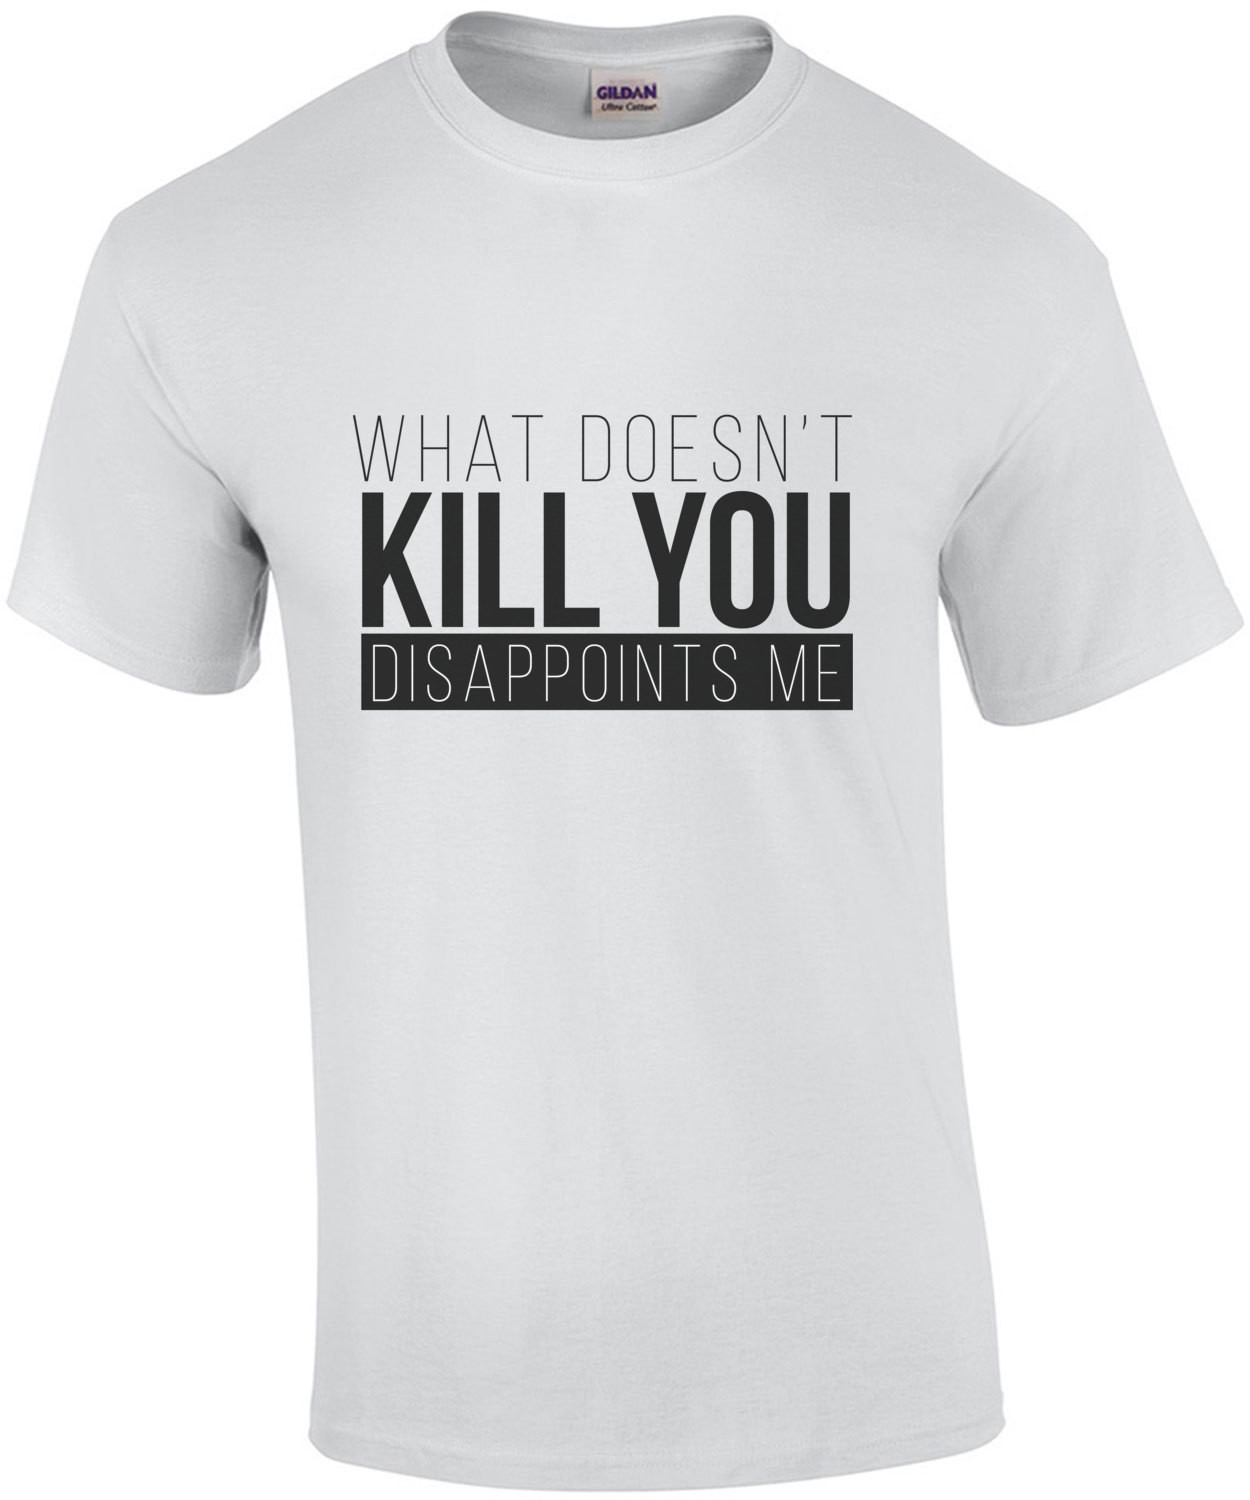 What doesn't kill you - Disappoints me - funny t-shirt